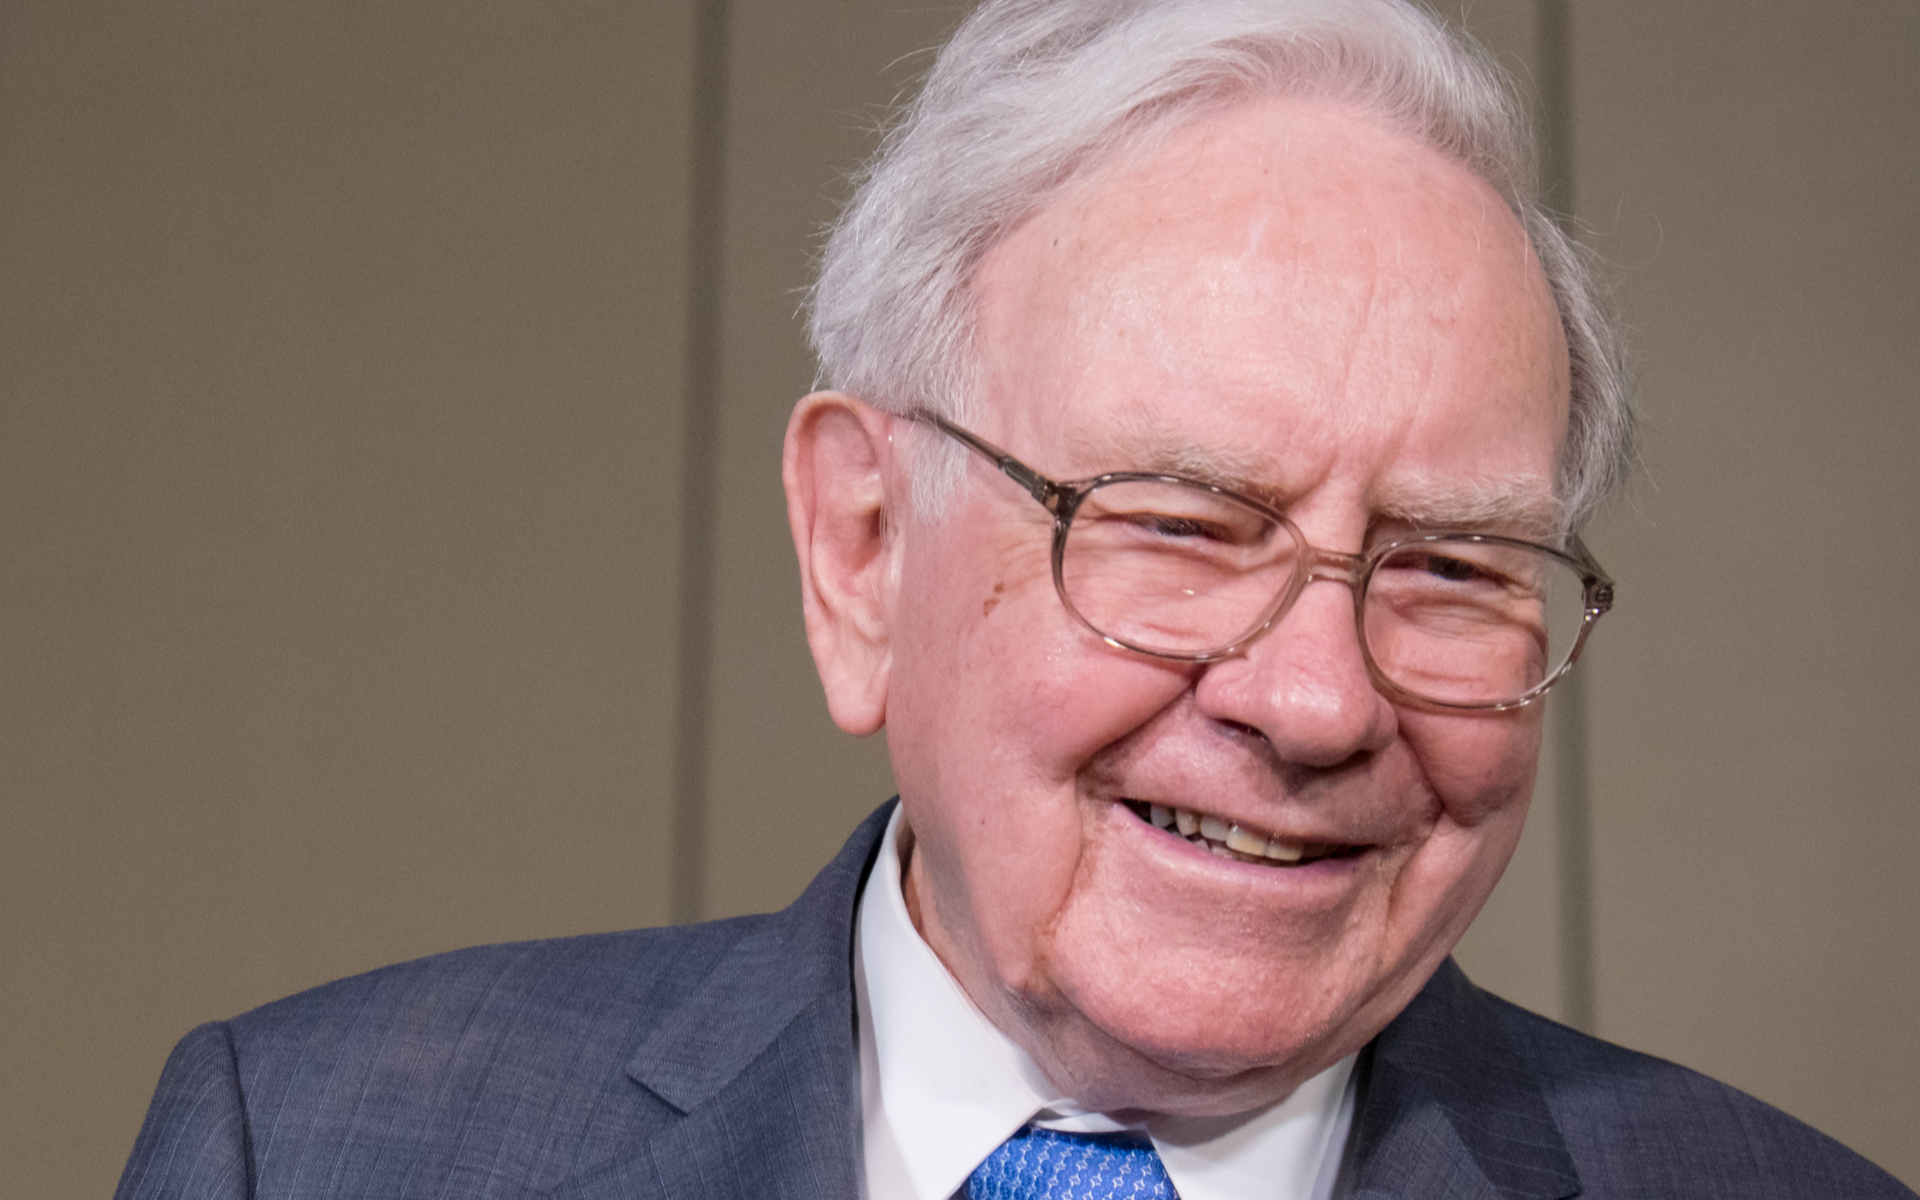 Apple Launches Its First Game In 11 Years Featuring Warren Buffett